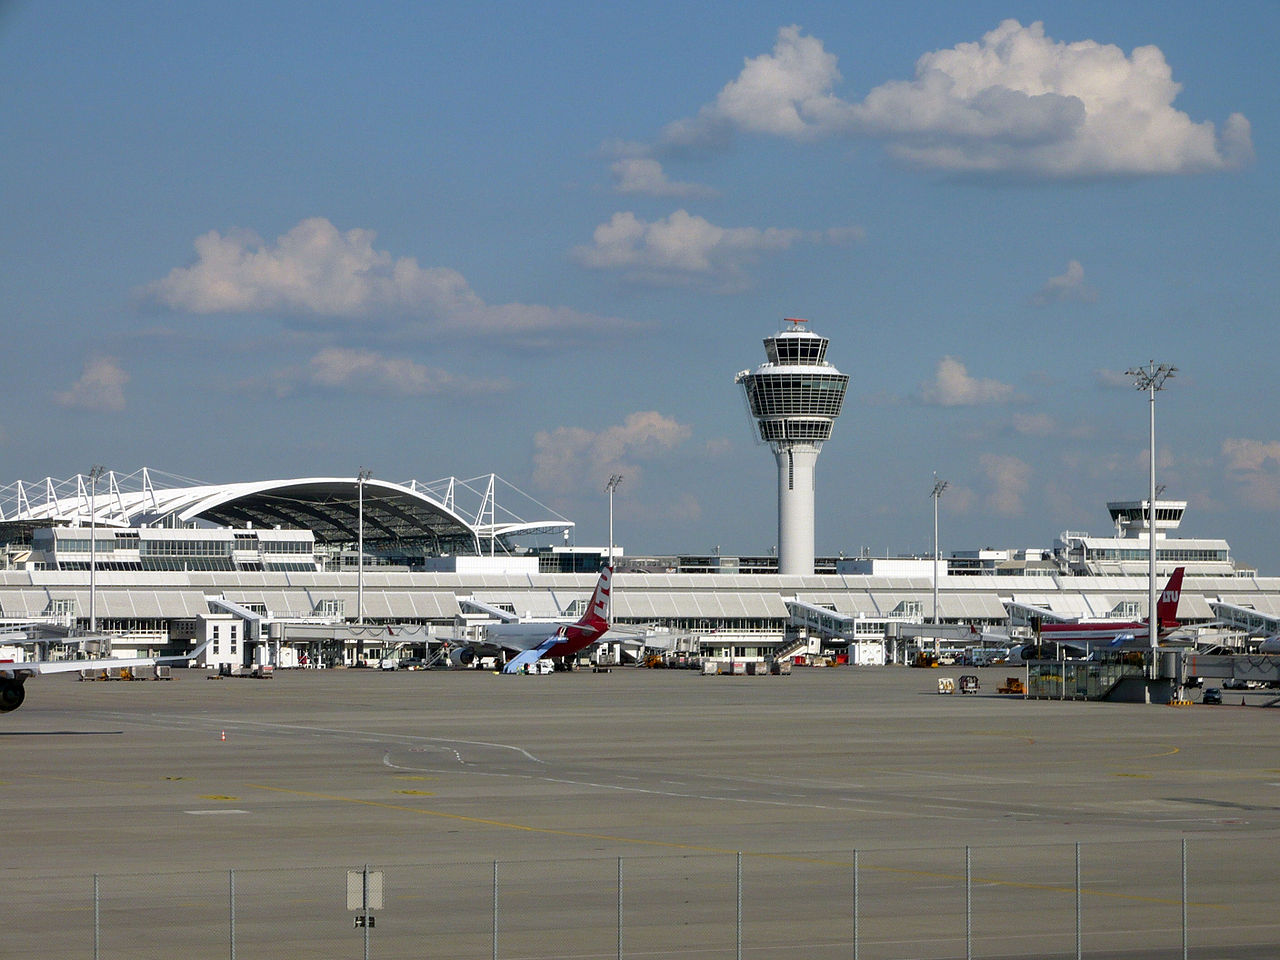 View of Munich Airport from the runway